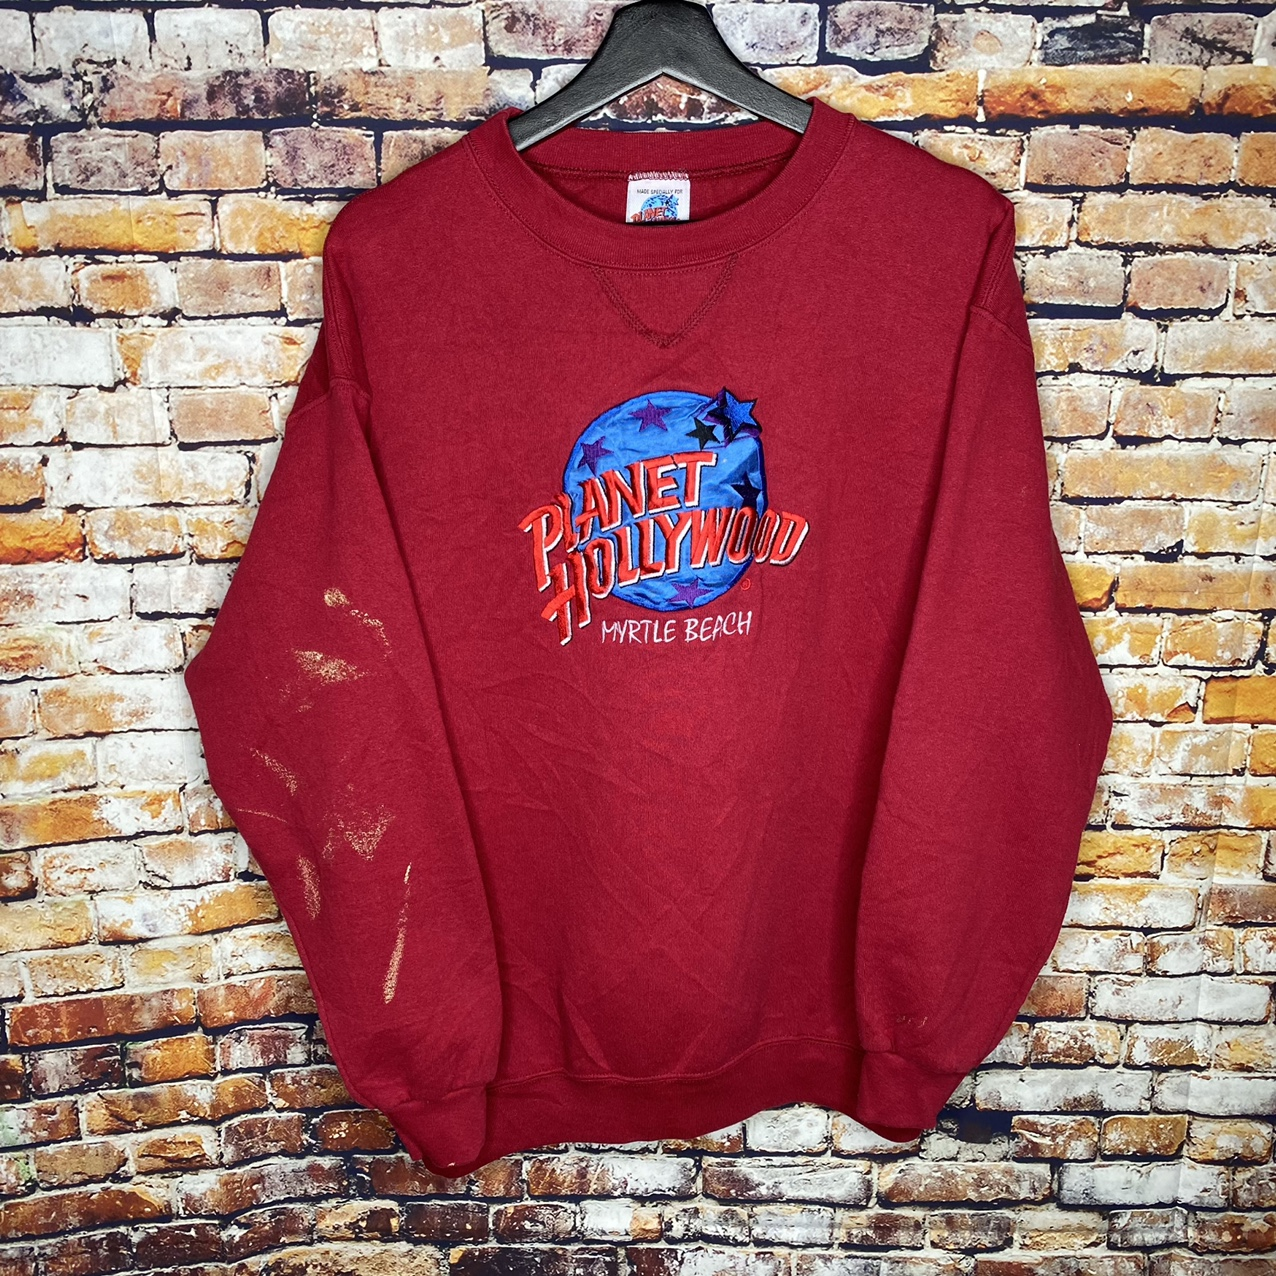 Product Image 1 - Vintage Planet Hollywood Myrtle Beach